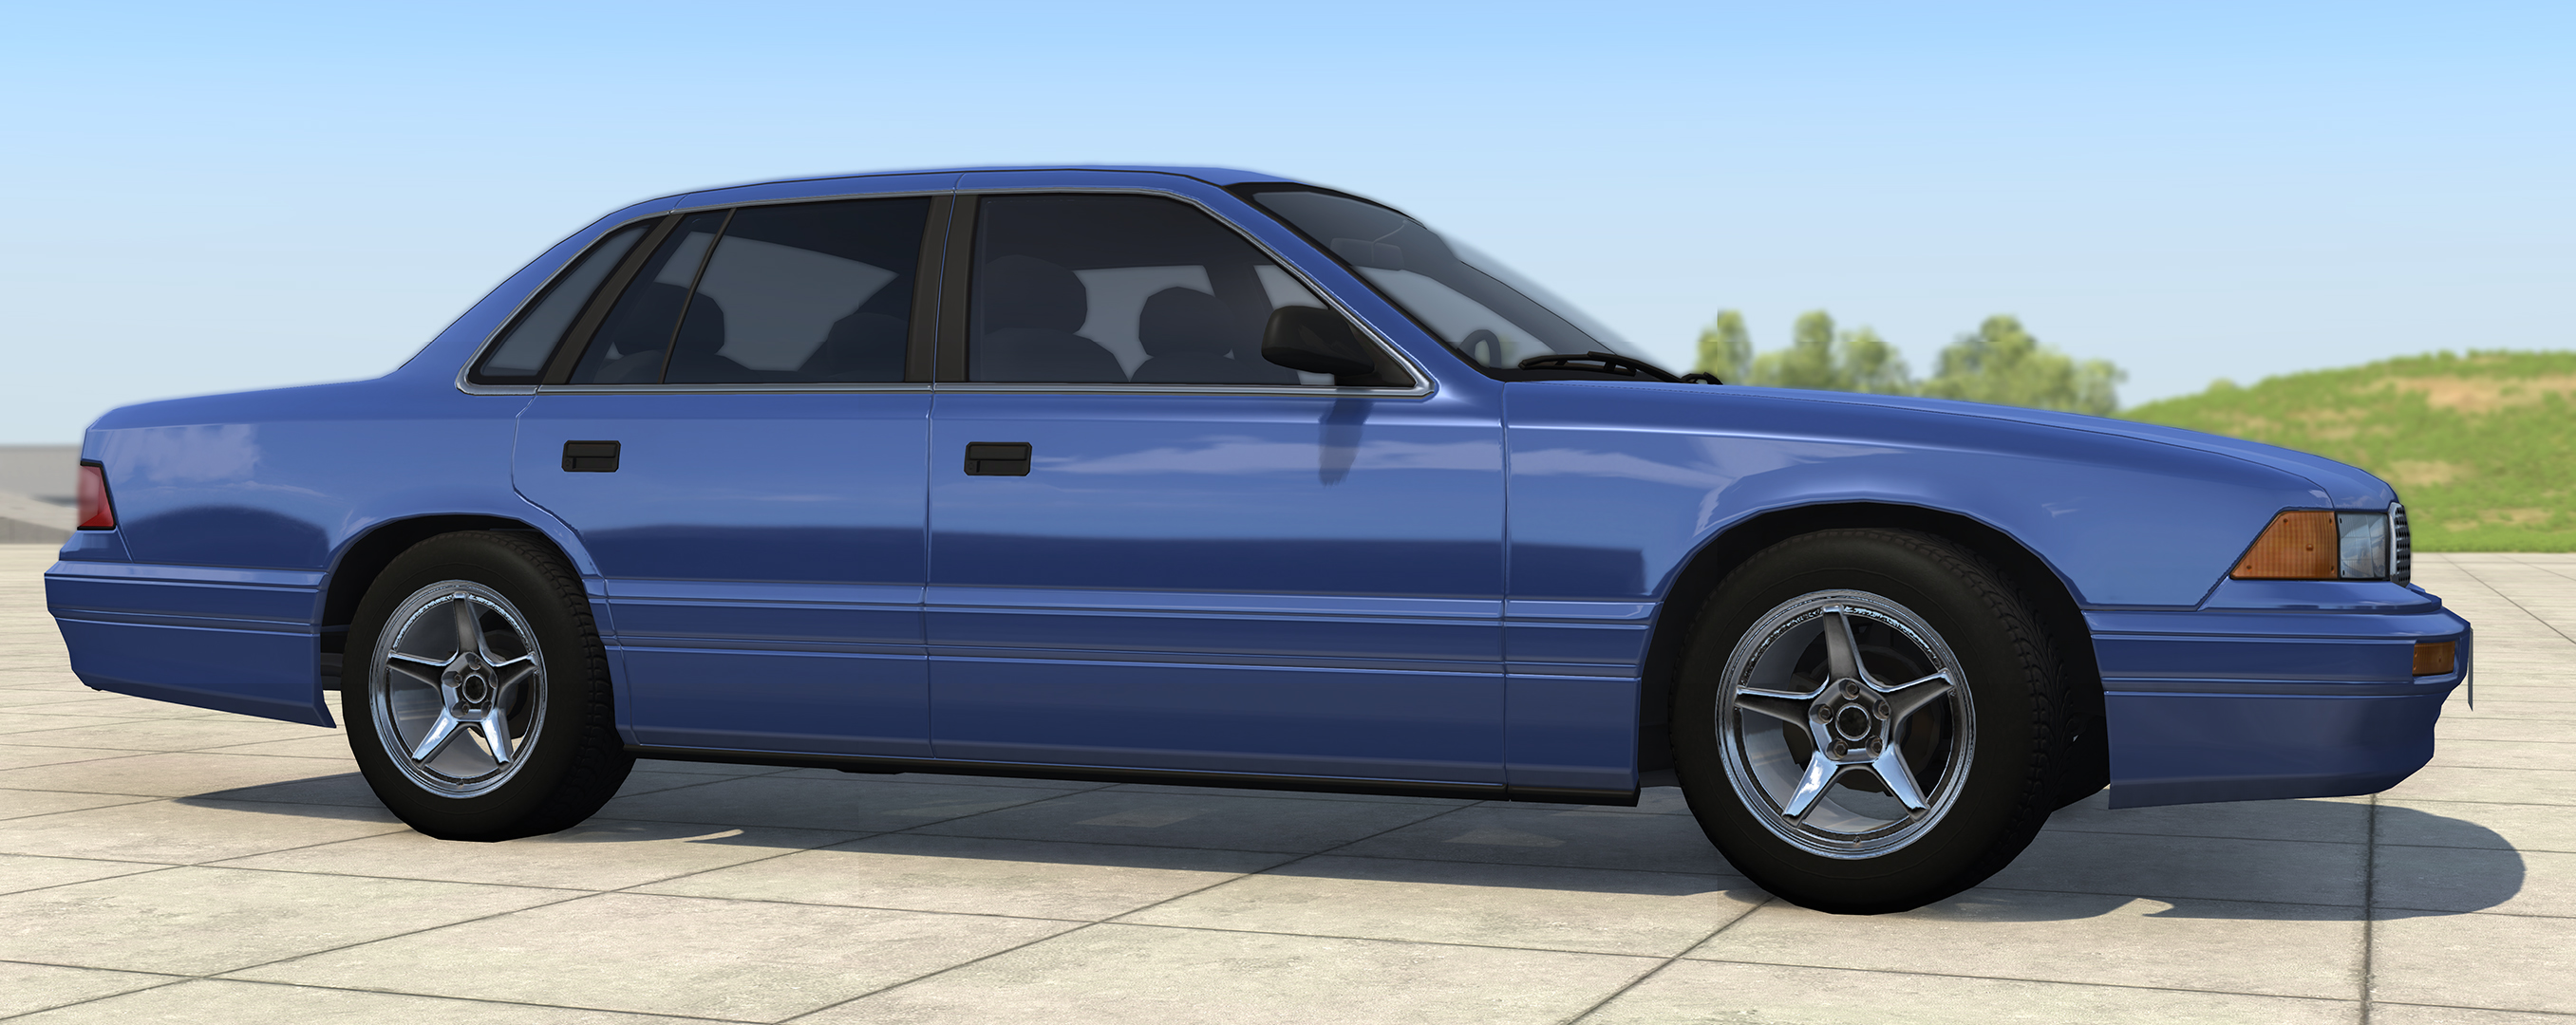 Changelog beamng page 6 grand marshal added new grand marshal luxe variant with chrome trim different wheels red interior and whitewall tires added body colored trim sciox Choice Image